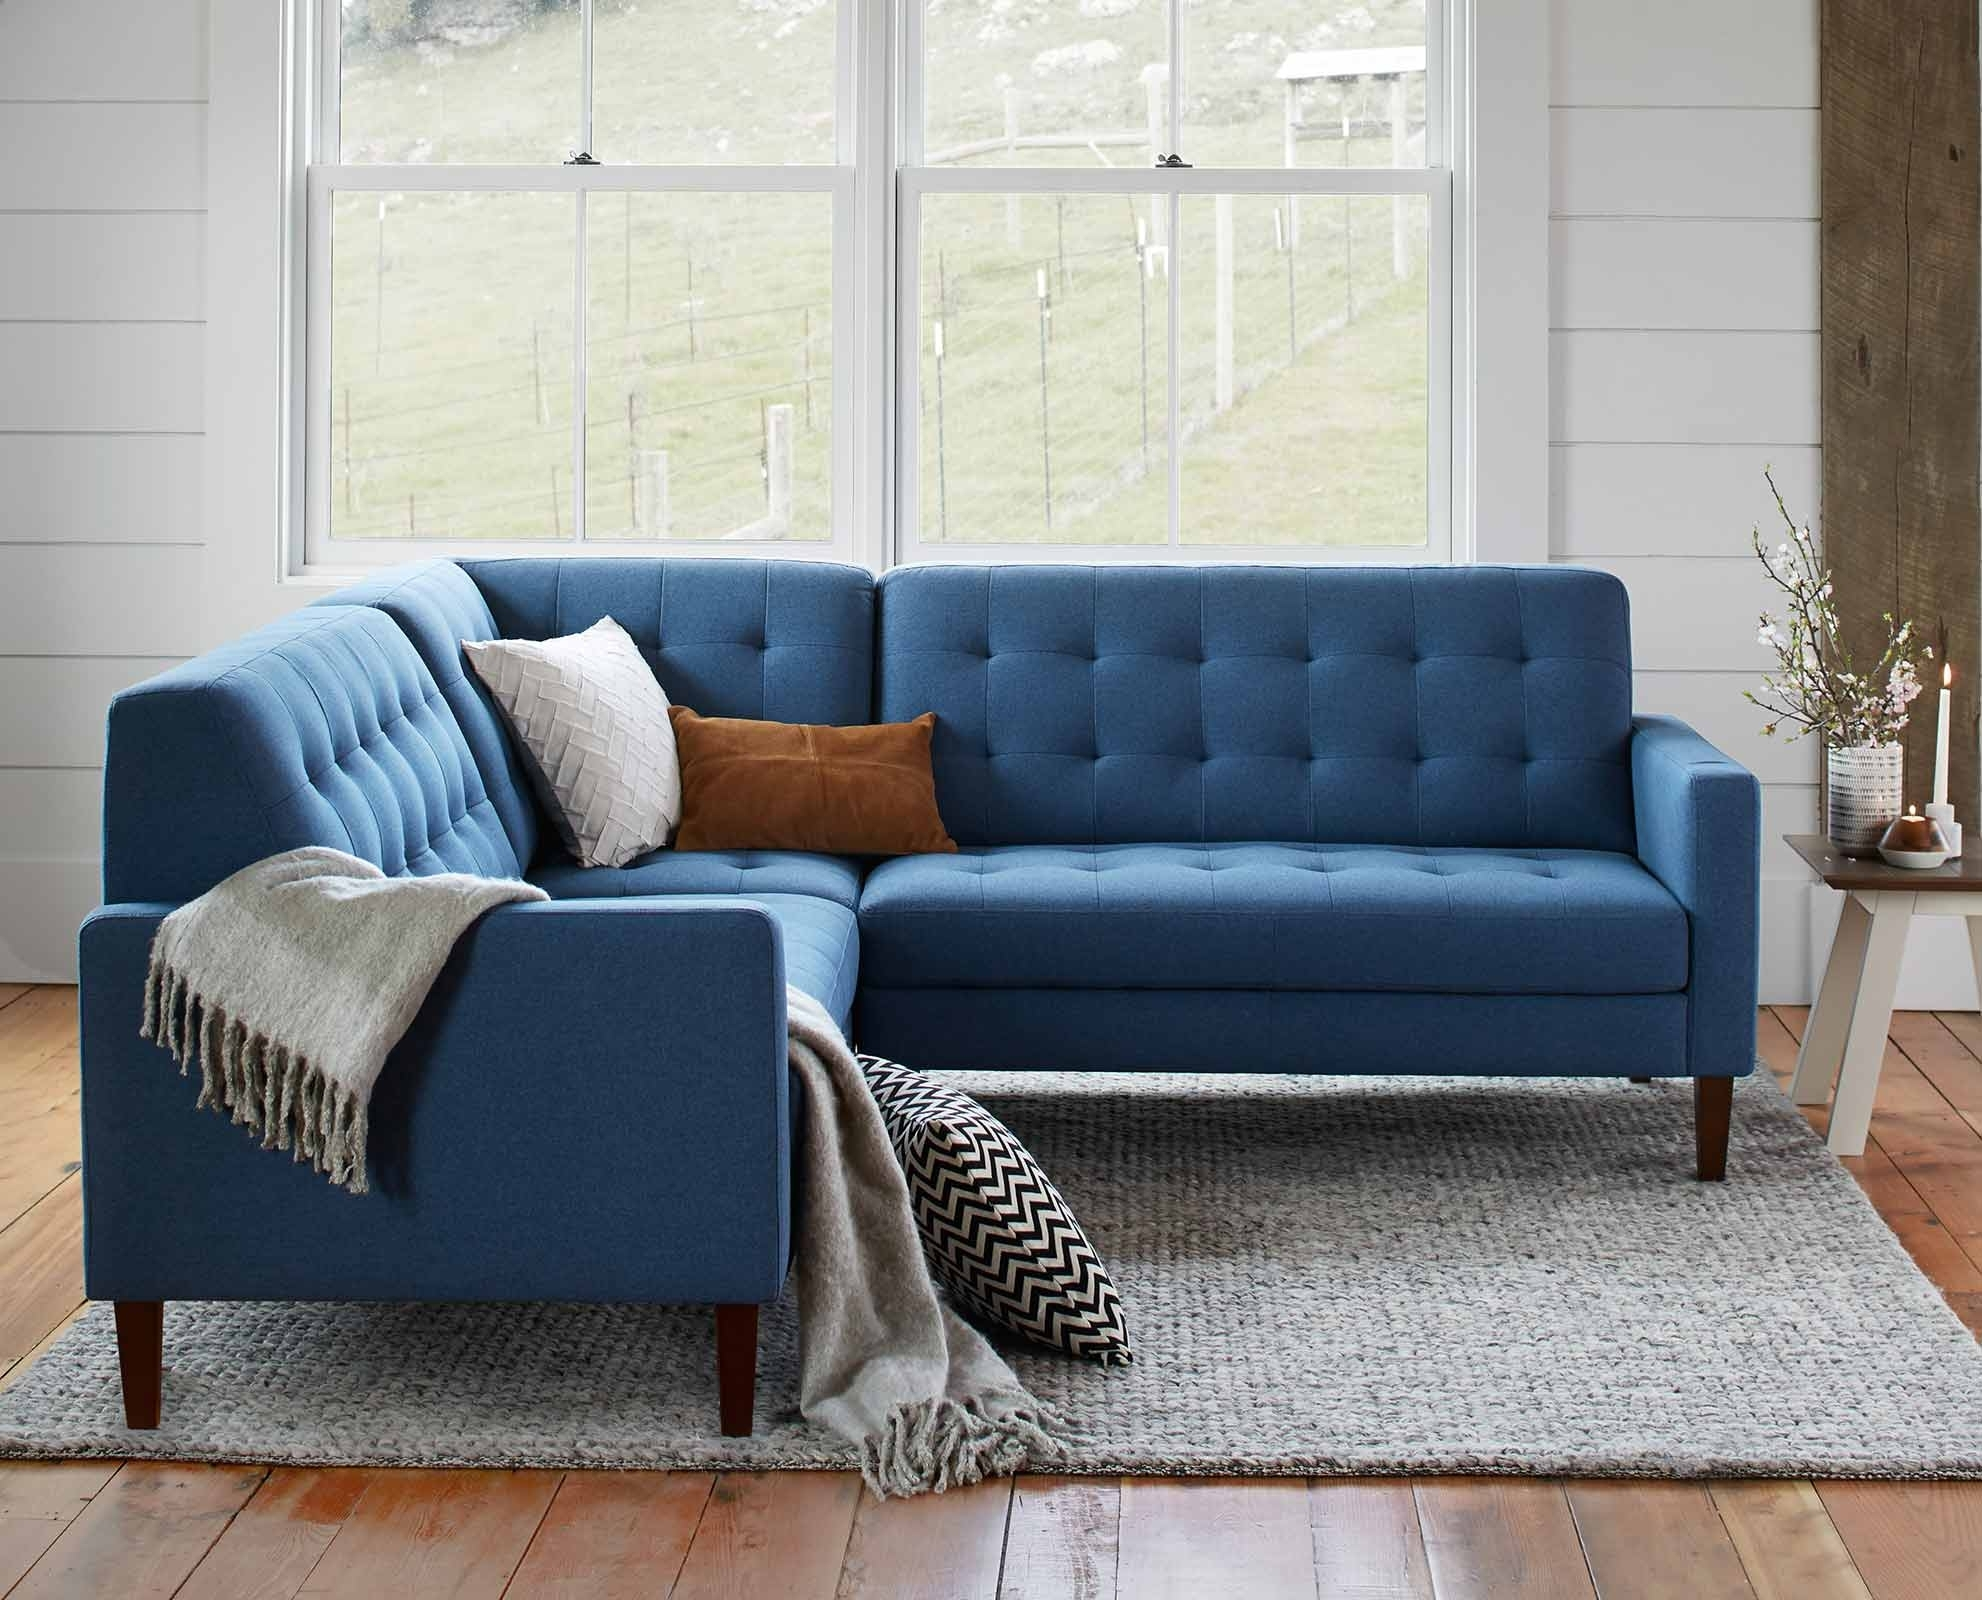 The Camilla Sectional From Scandinavian Designs - Adopt A Adopt A throughout Dania Sectional Sofas